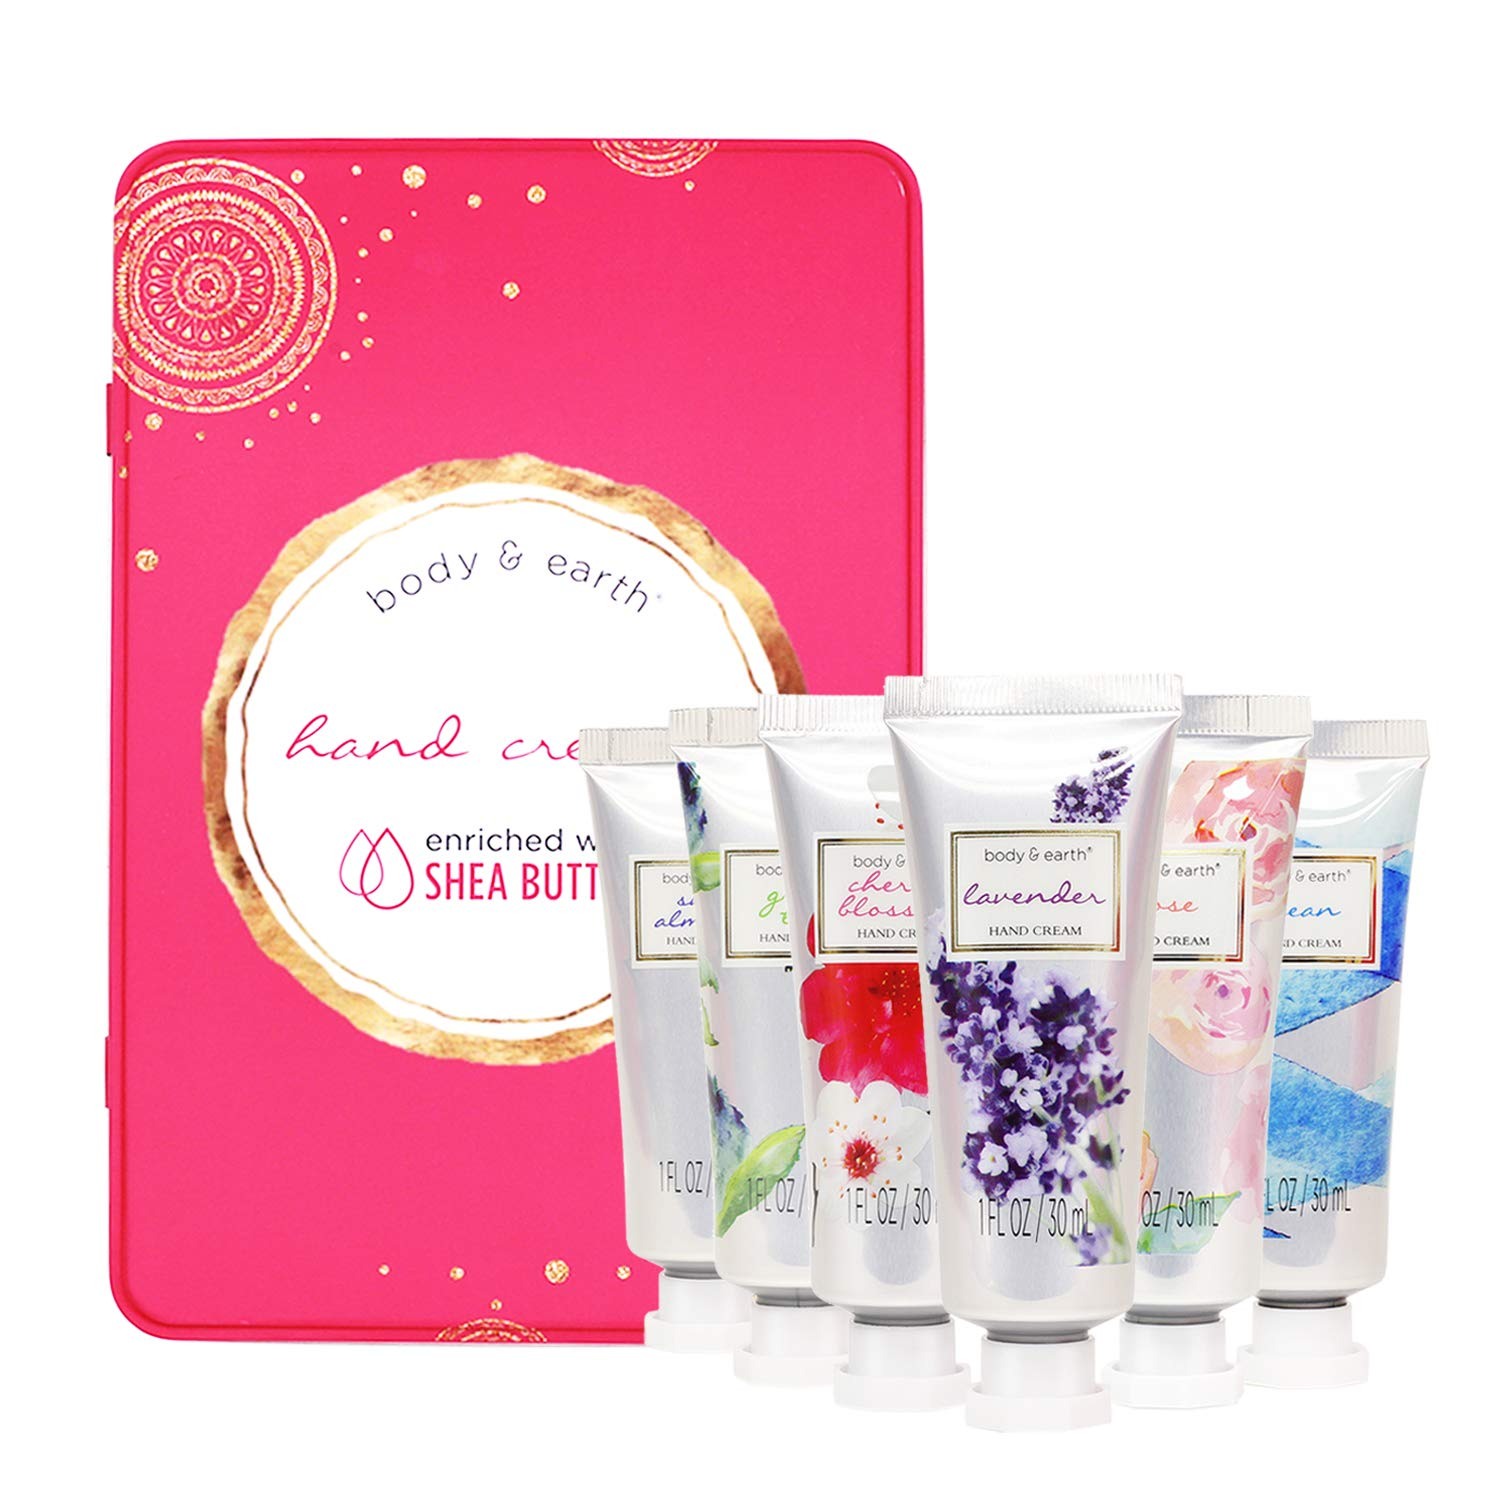 Hand Cream Gift Set, Body & Earth Luxurious Hand Lotion Set Deeply Moisturizing for Rough Hands, Enriched with Shea Butter and Glycerin, 6 Pcs Travel size (6x1.0 oz), Best Gift Ideas for Women